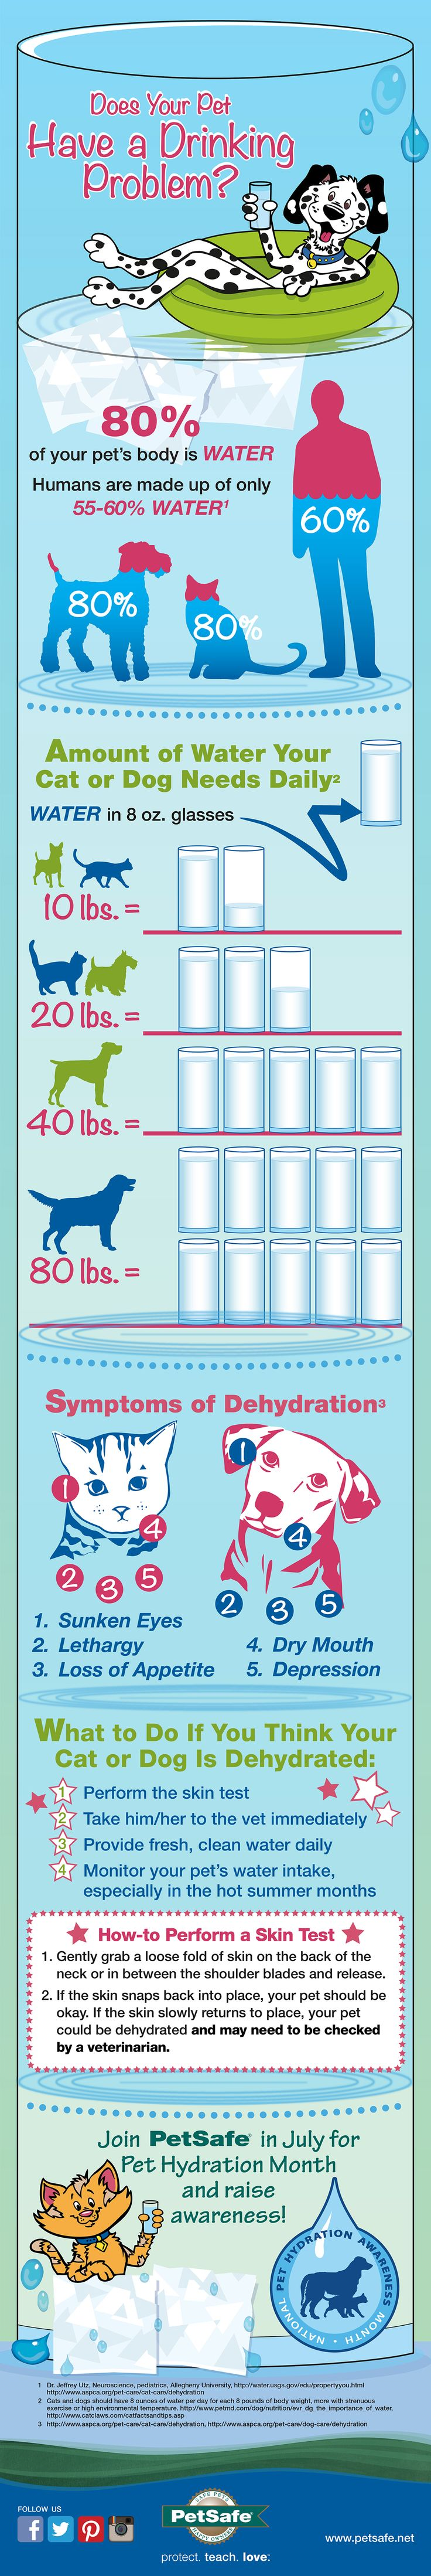 Dawg Business: It's Your Dog's Health!: How Much Water Does A Dog Need Daily? Infographic